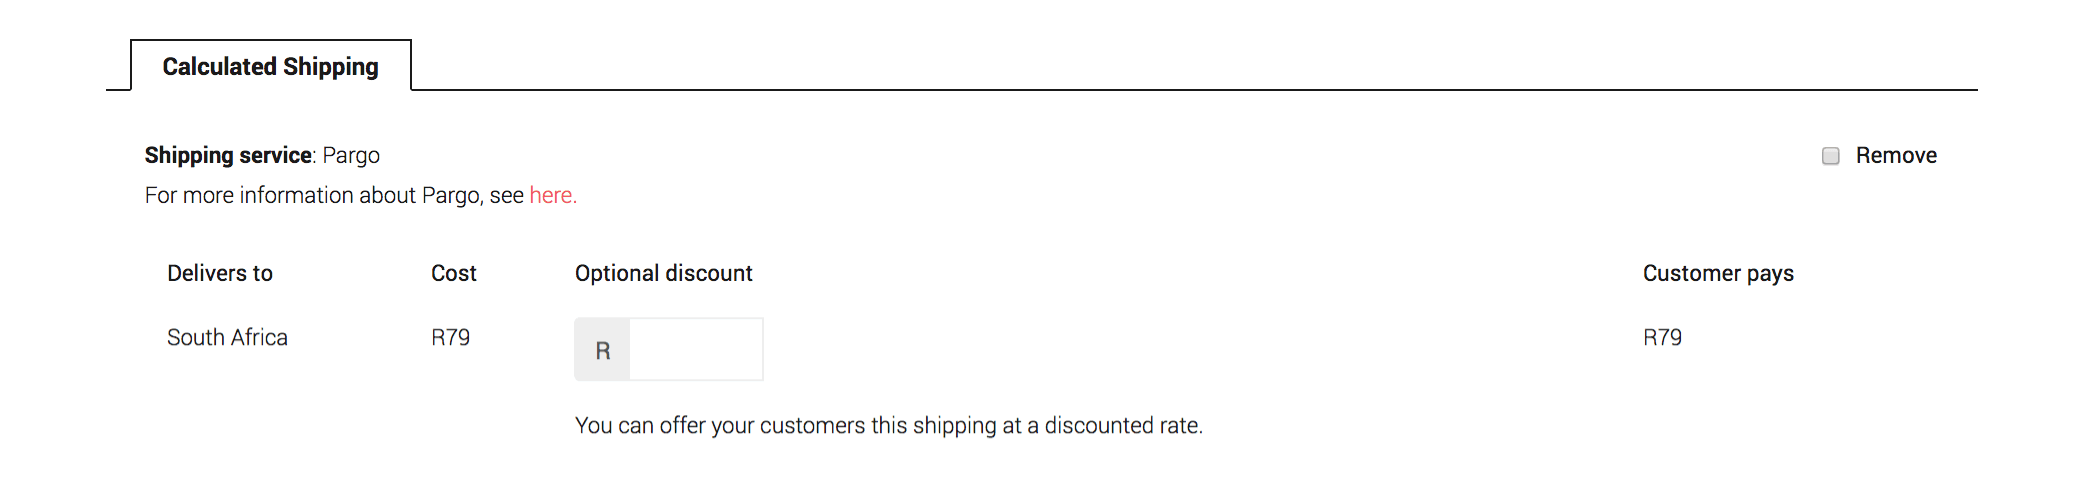 Add Product - Calculated Shipping